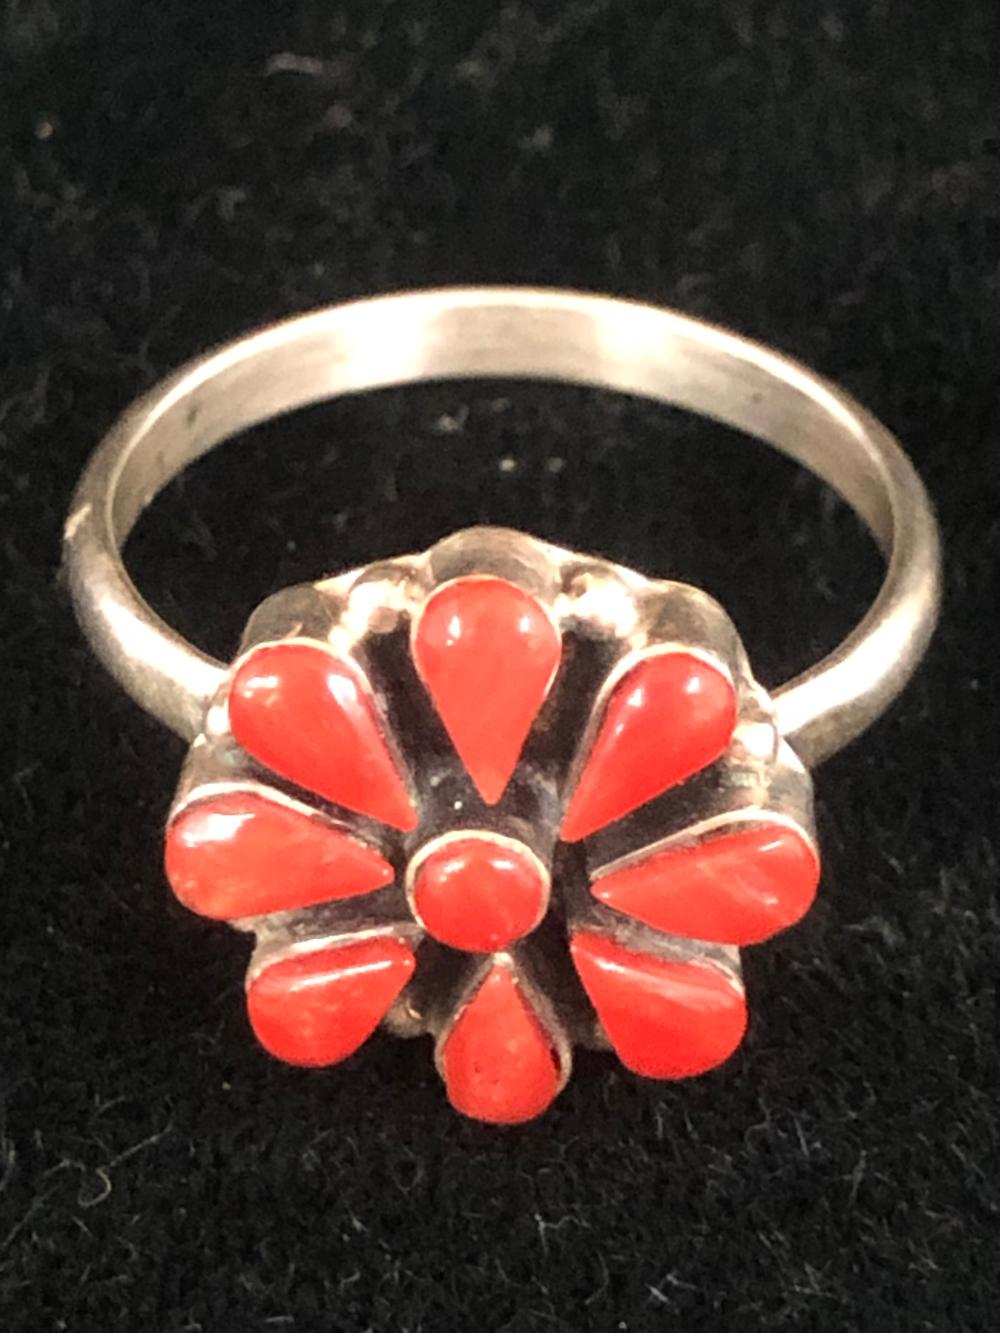 Coral stone sterling silver ring